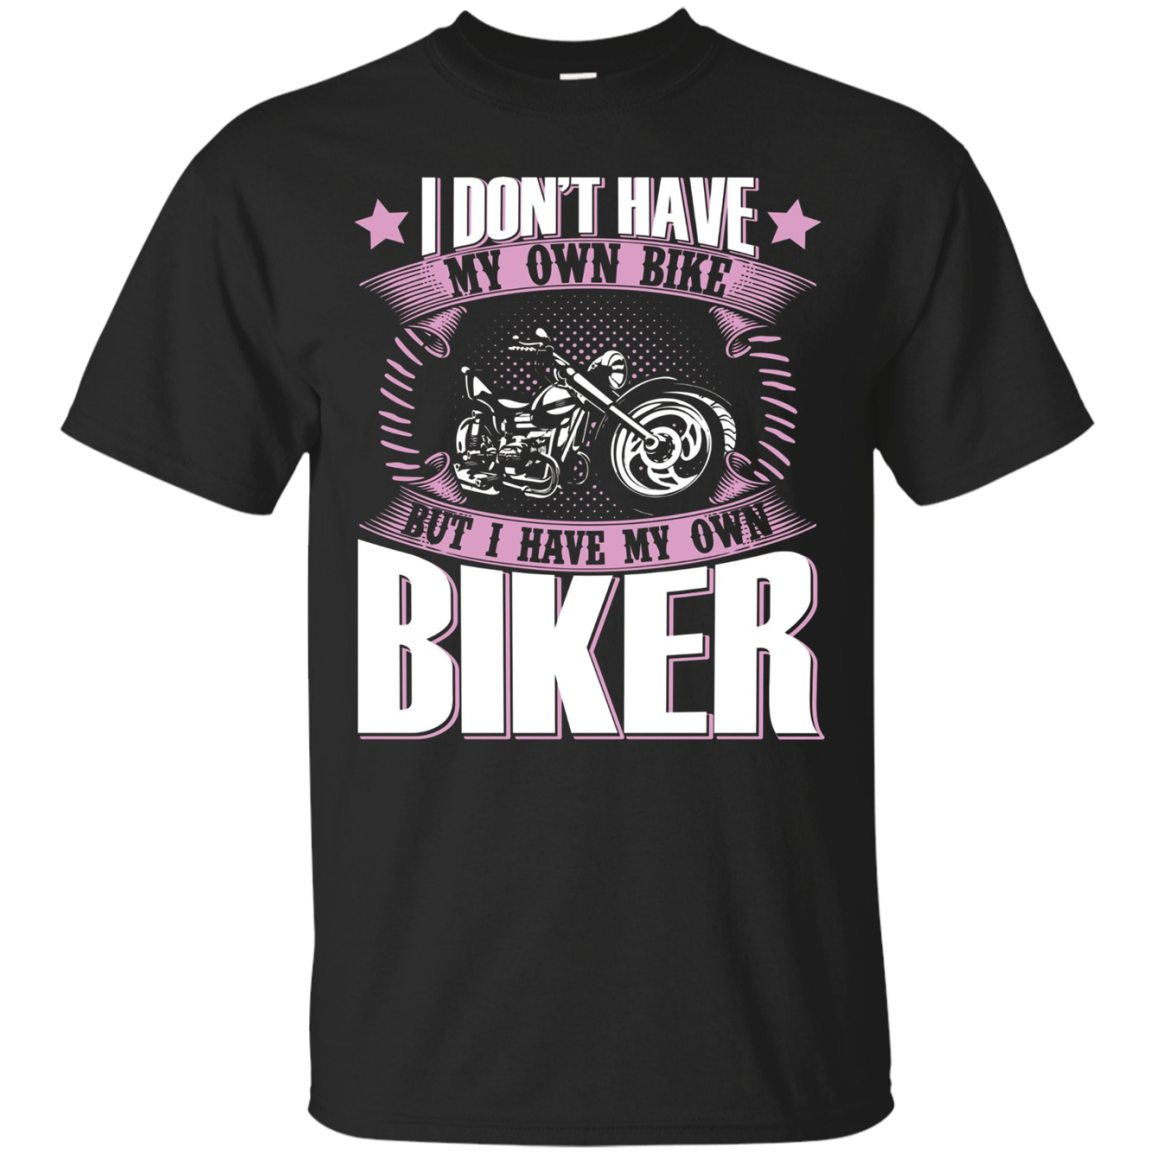 I Don't Have My Own Bike But I Have My Own Biker T-shirt